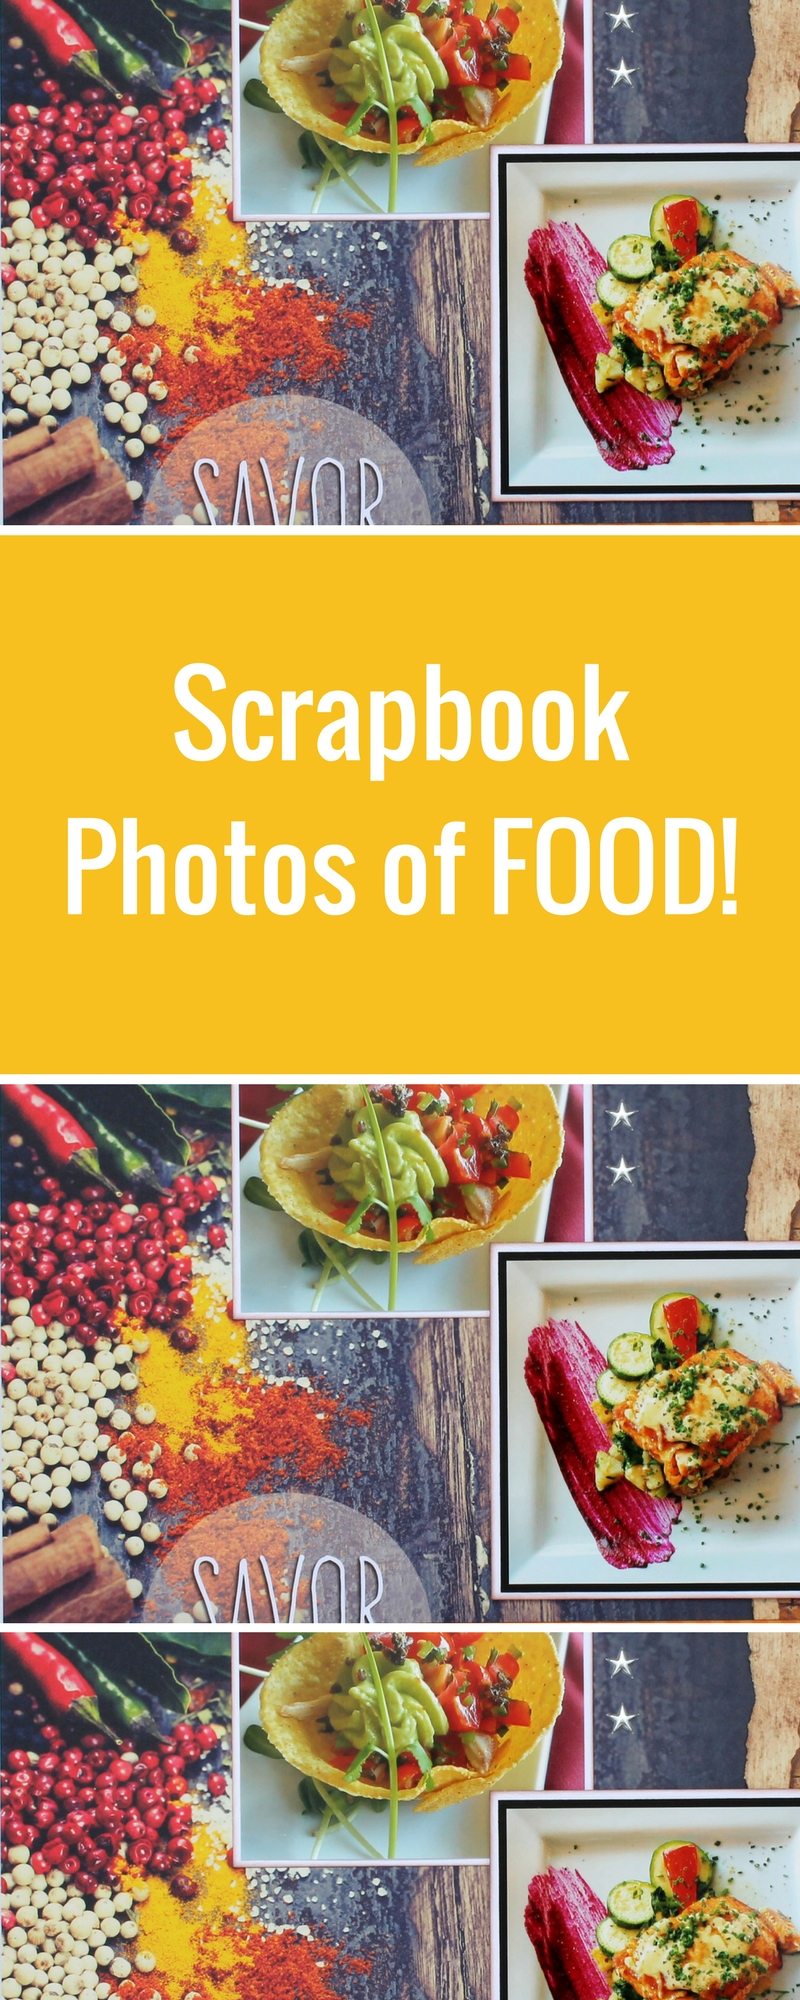 Paper house productions delish collection of scrapbook for Scrapbooking cuisine